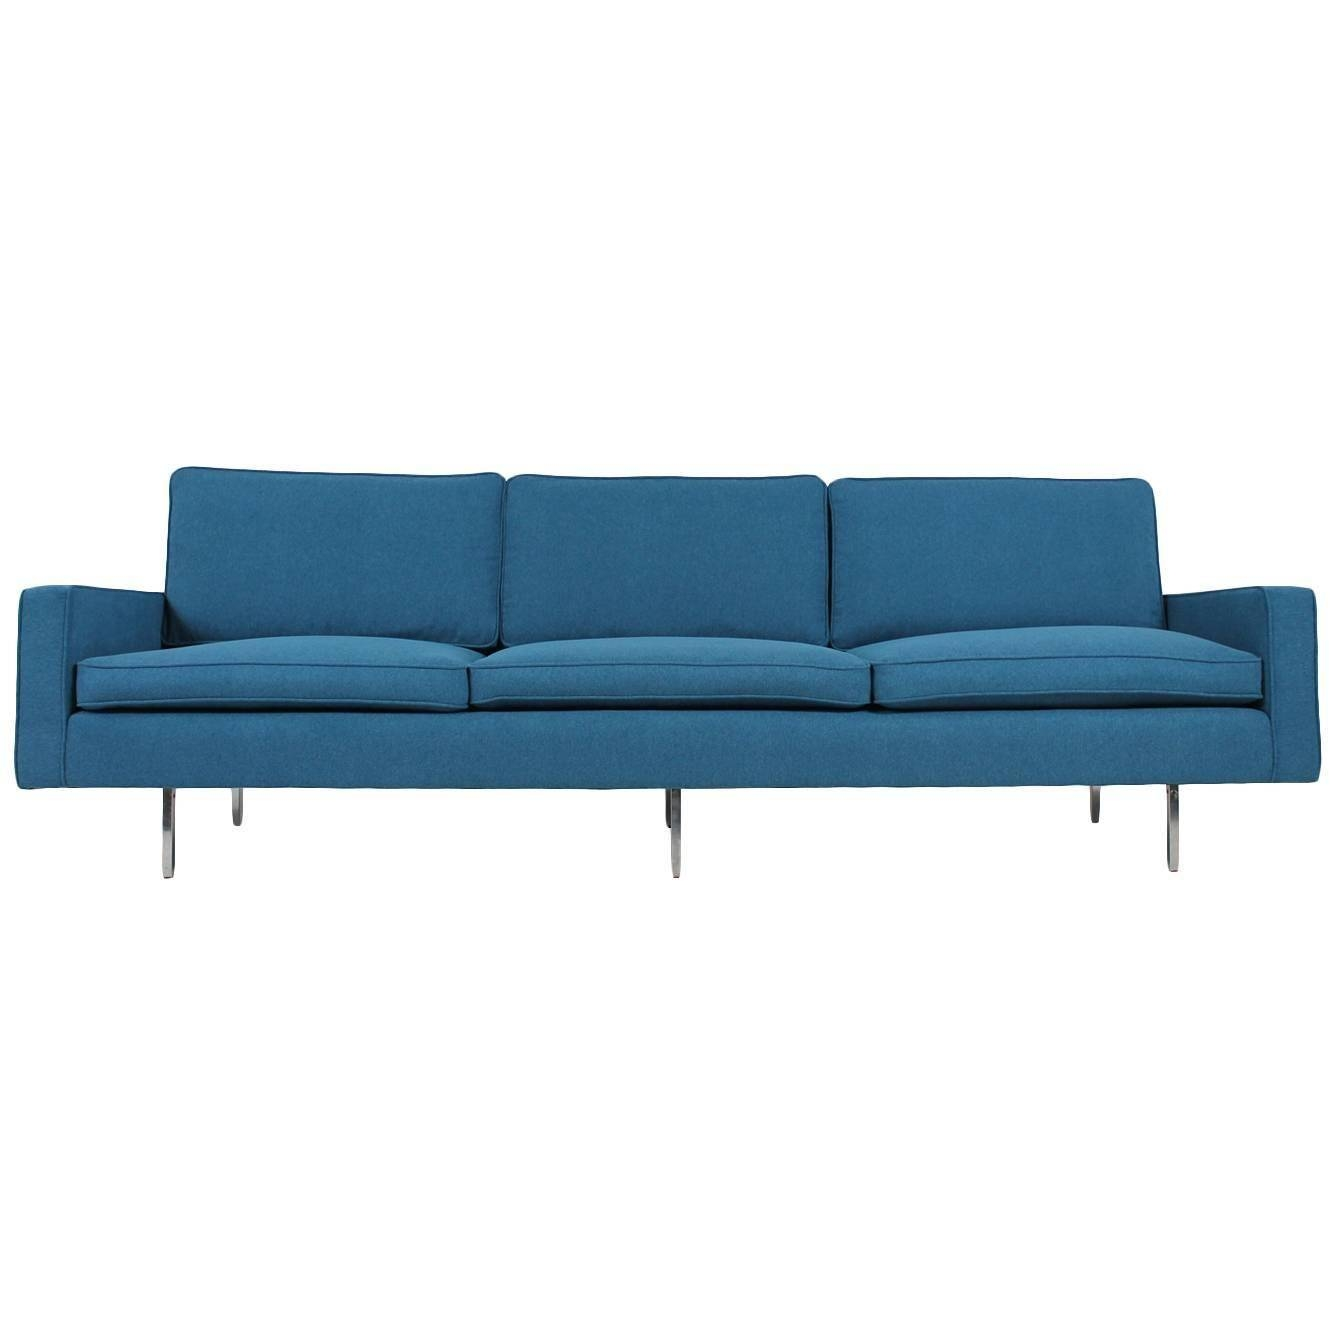 Beautiful Mid-Century Florence Knoll Sofa Mod. 25 Bc Knoll intended for Florence Sofas (Image 1 of 30)